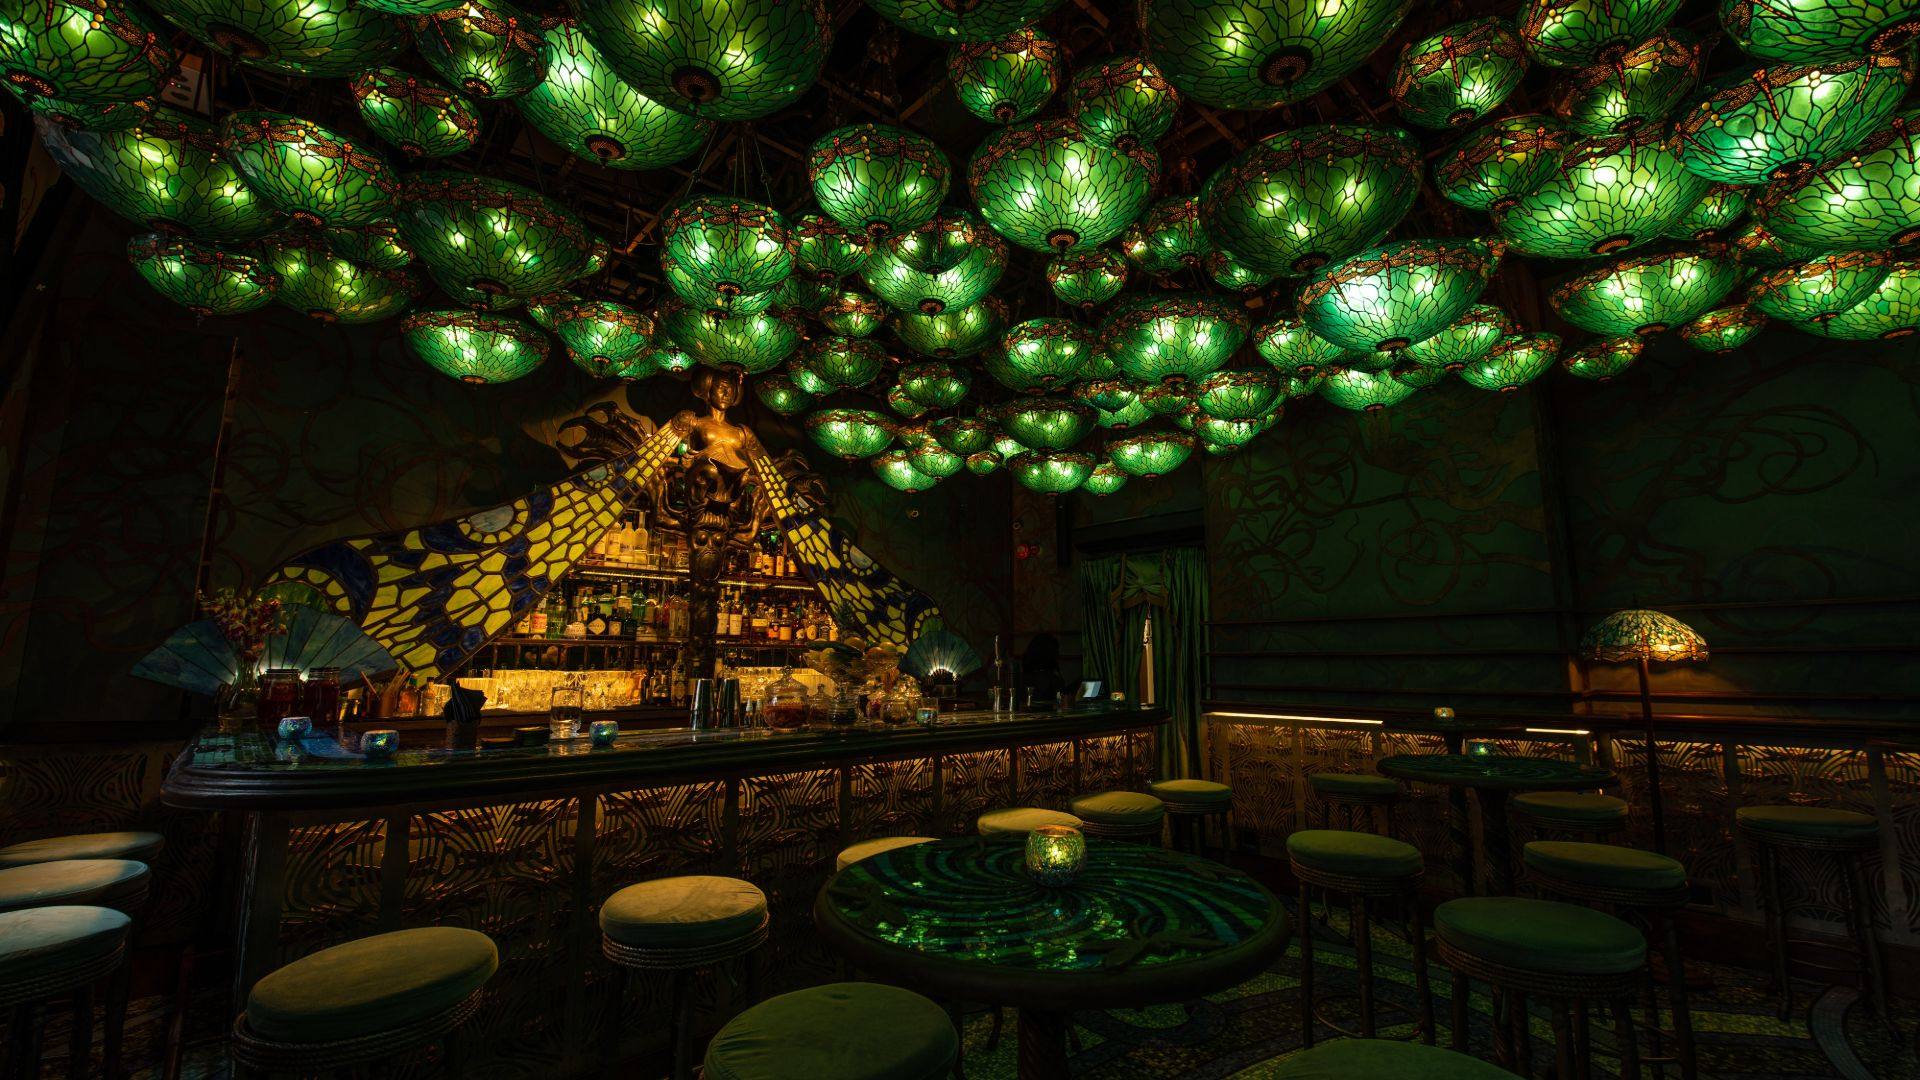 Some of Hong Kong's most beautiful bars